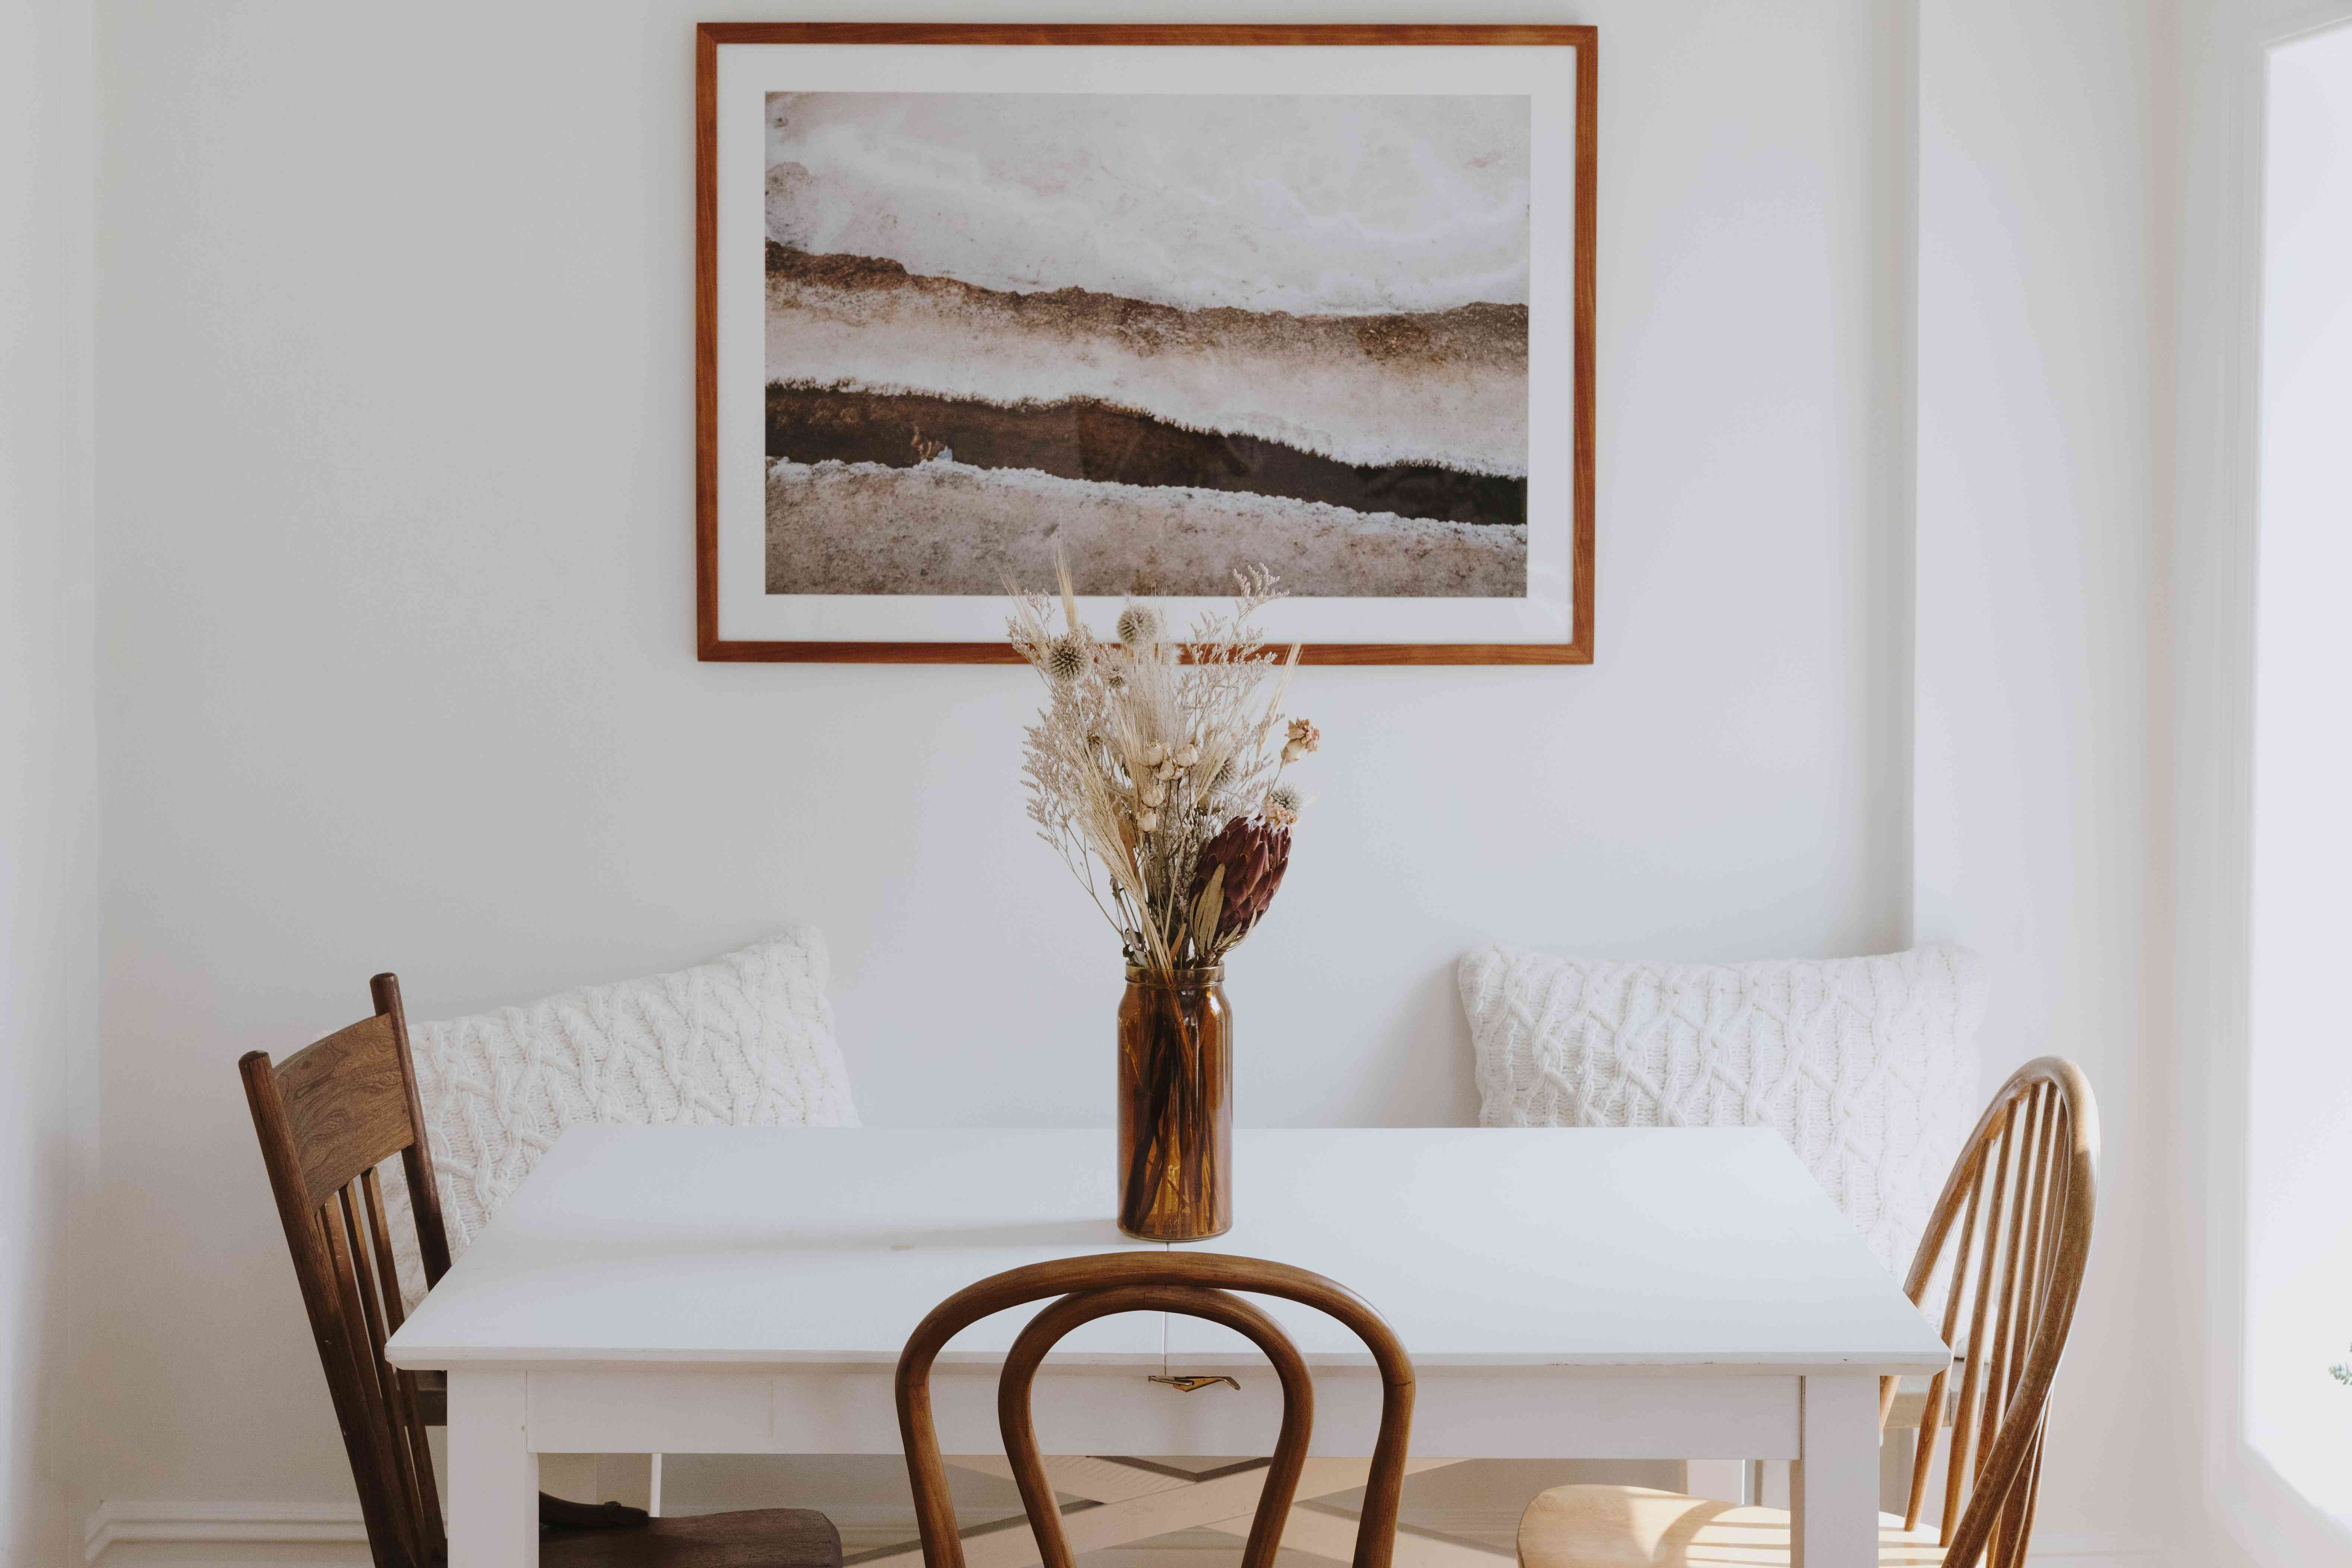 wooden furniture and frame